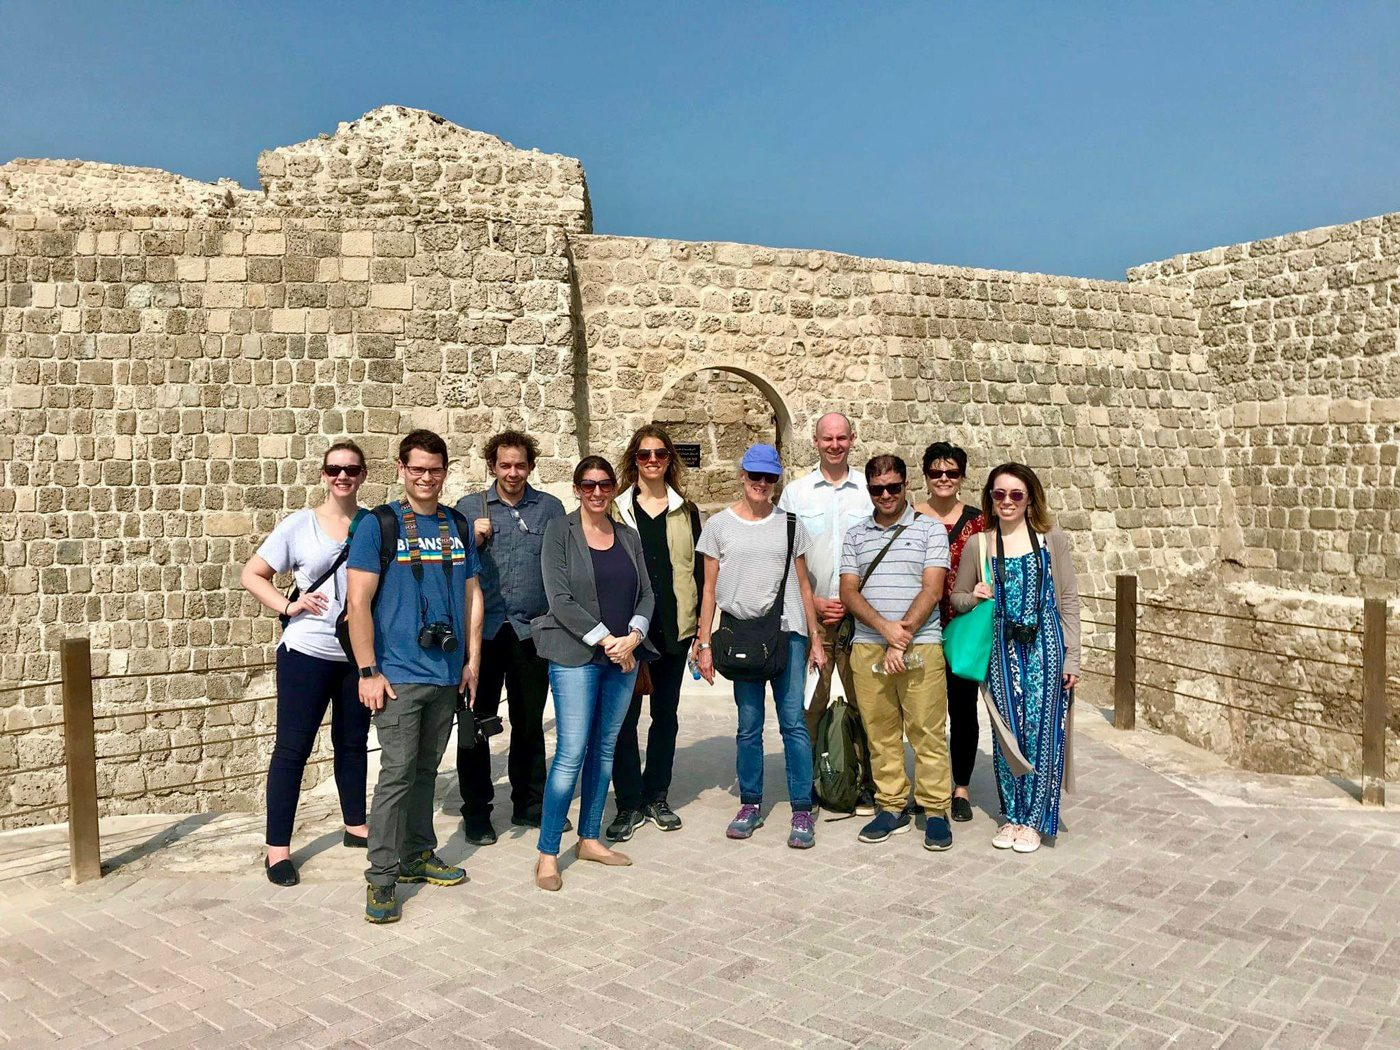 A visit to the Dilmun civilization site in Bahrain.